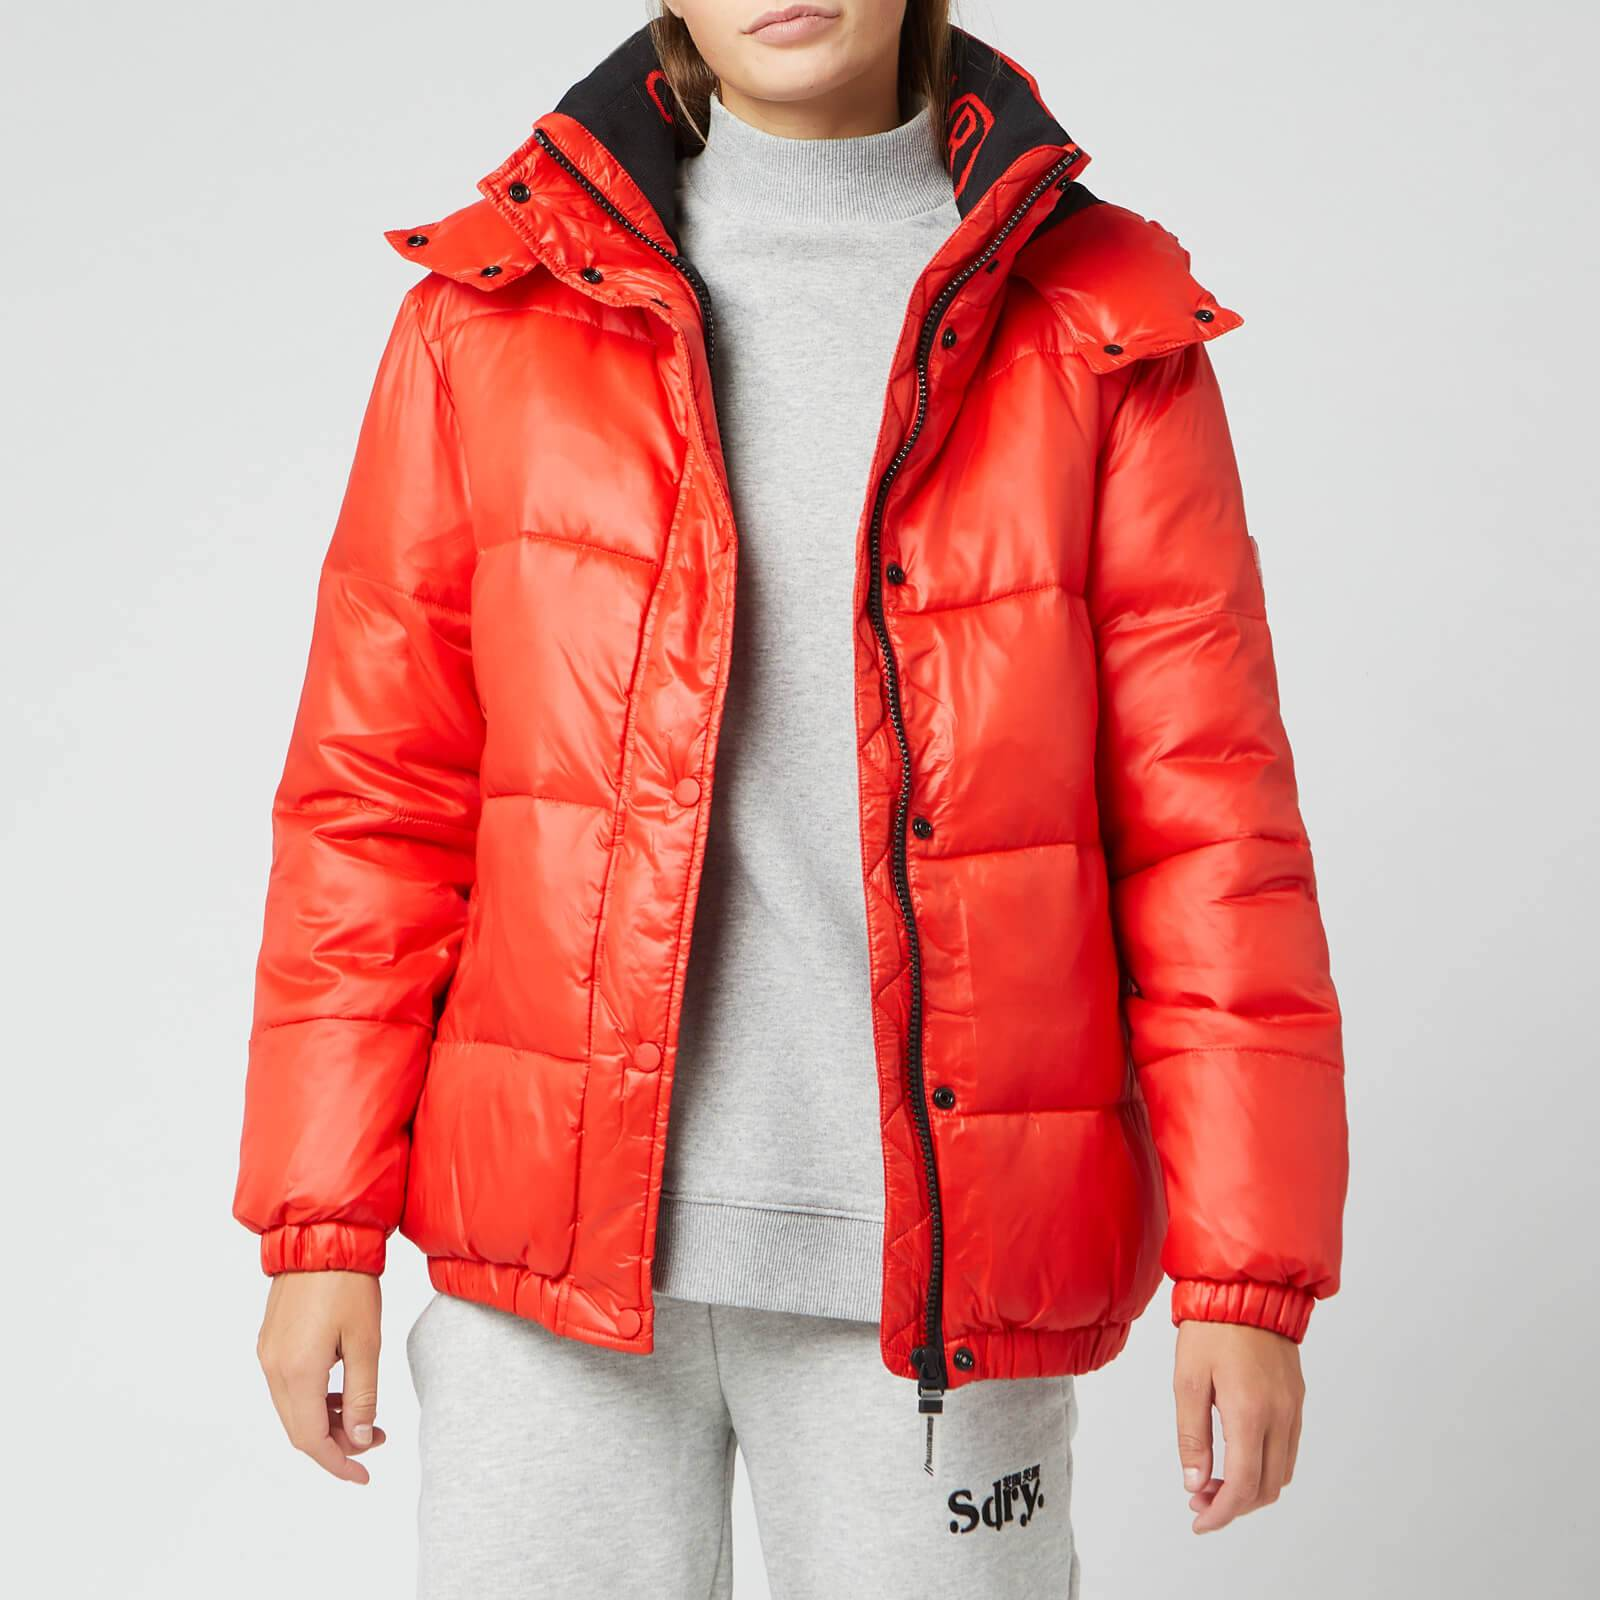 Superdry Women's Astrid Puffer Jacket - Apple Red - UK 8